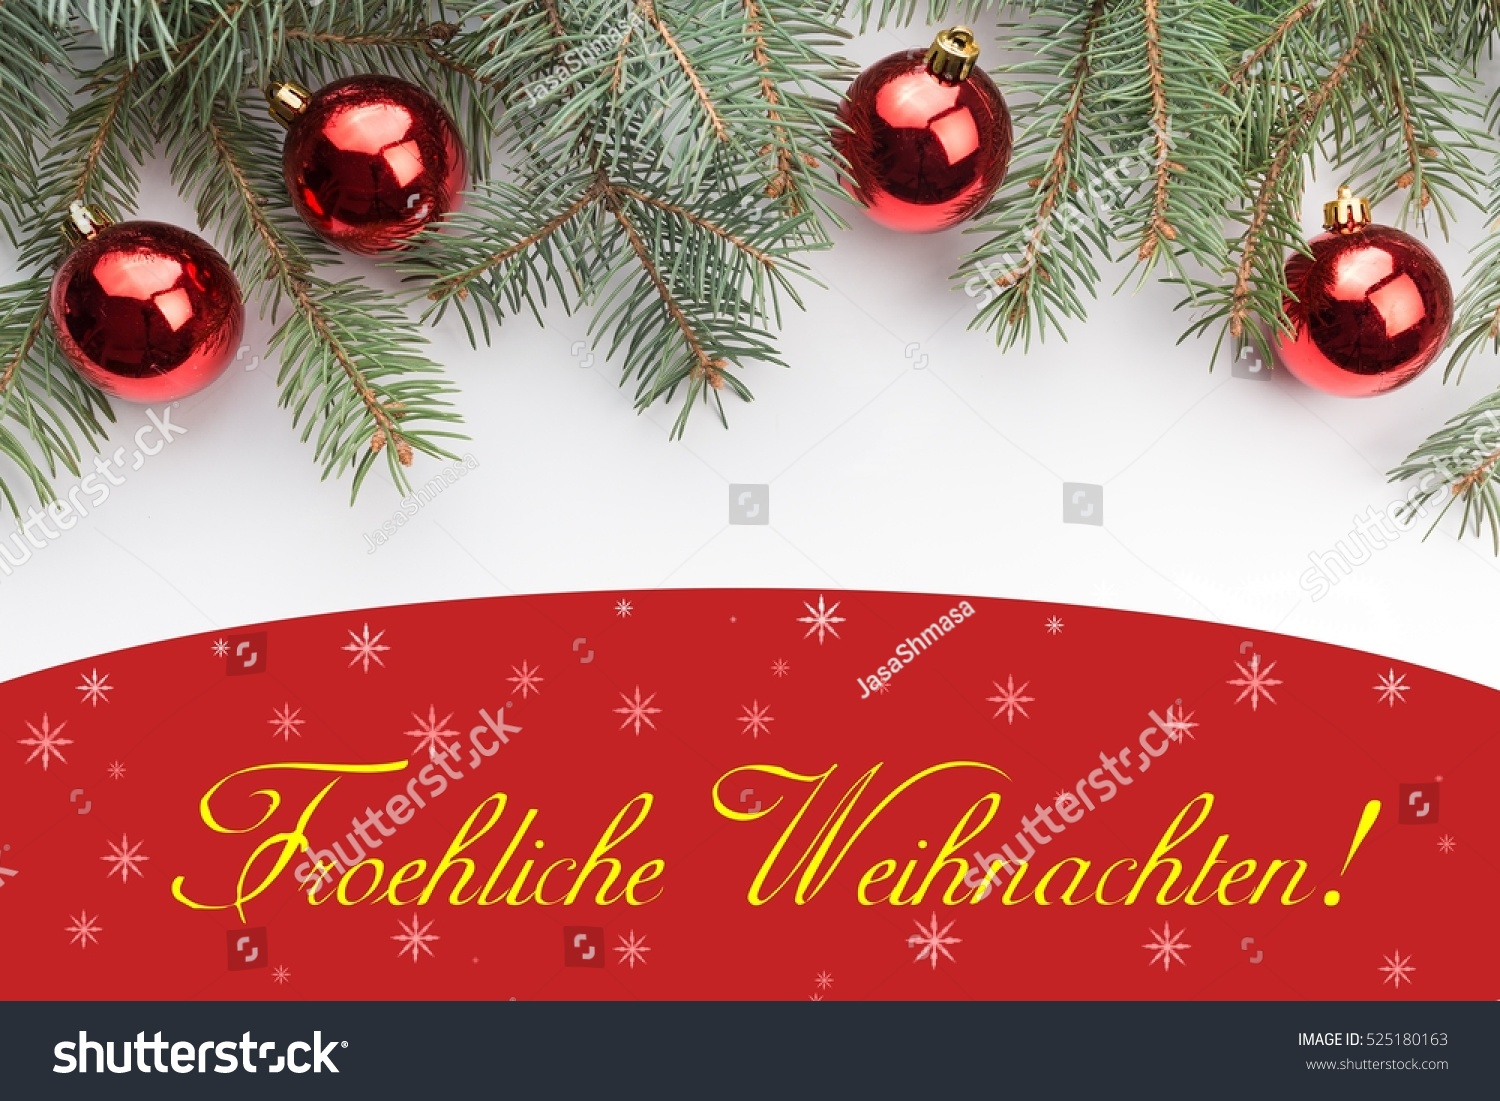 Christmas Decoration Background Message Froehliche Weihnachten Stock ...